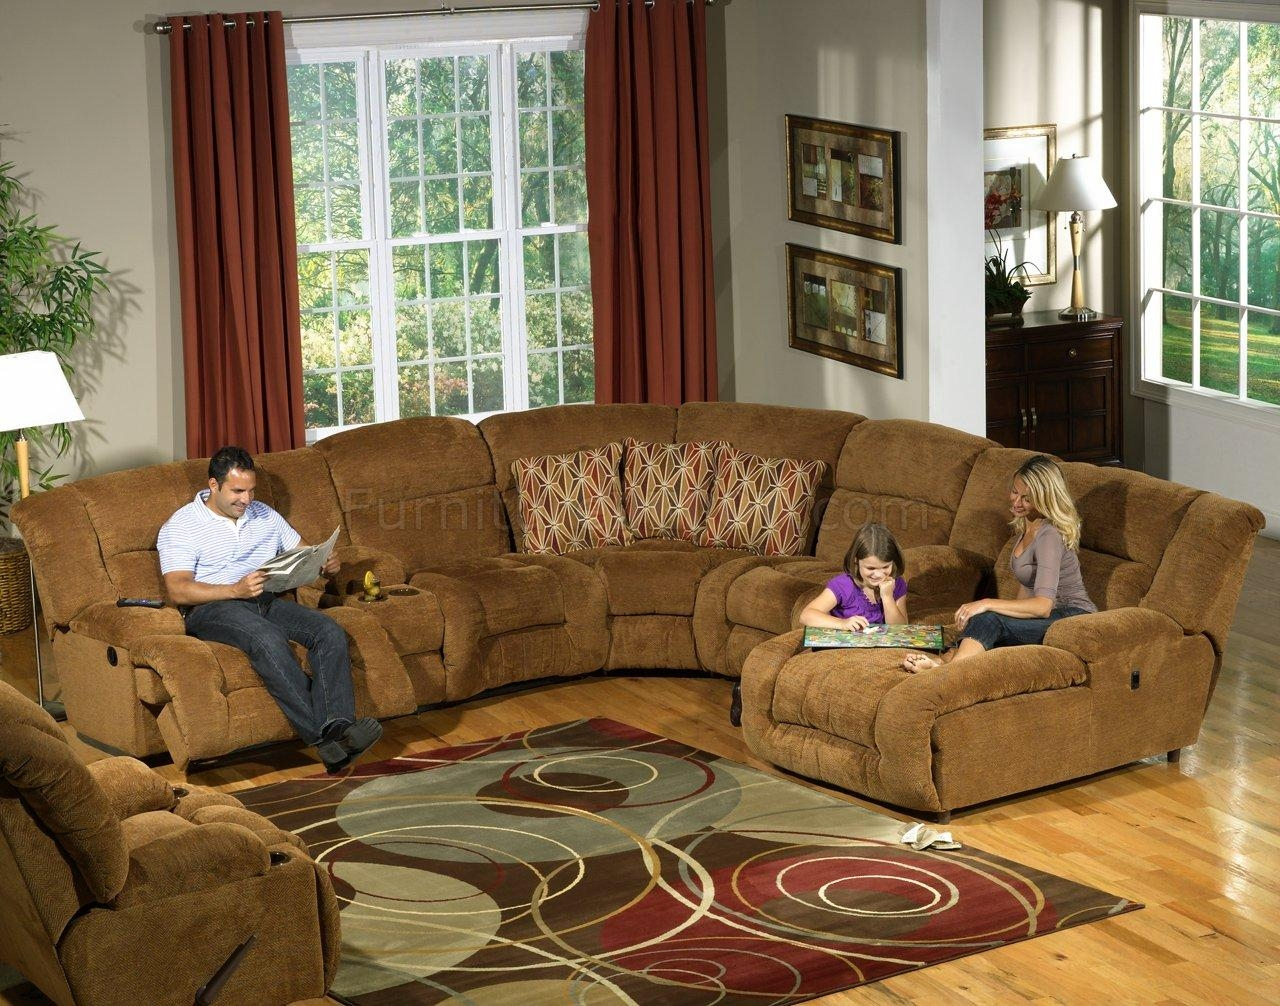 Camel Colored Sofa | Sofa Gallery | Kengire With Camel Color Sofas (View 6 of 20)